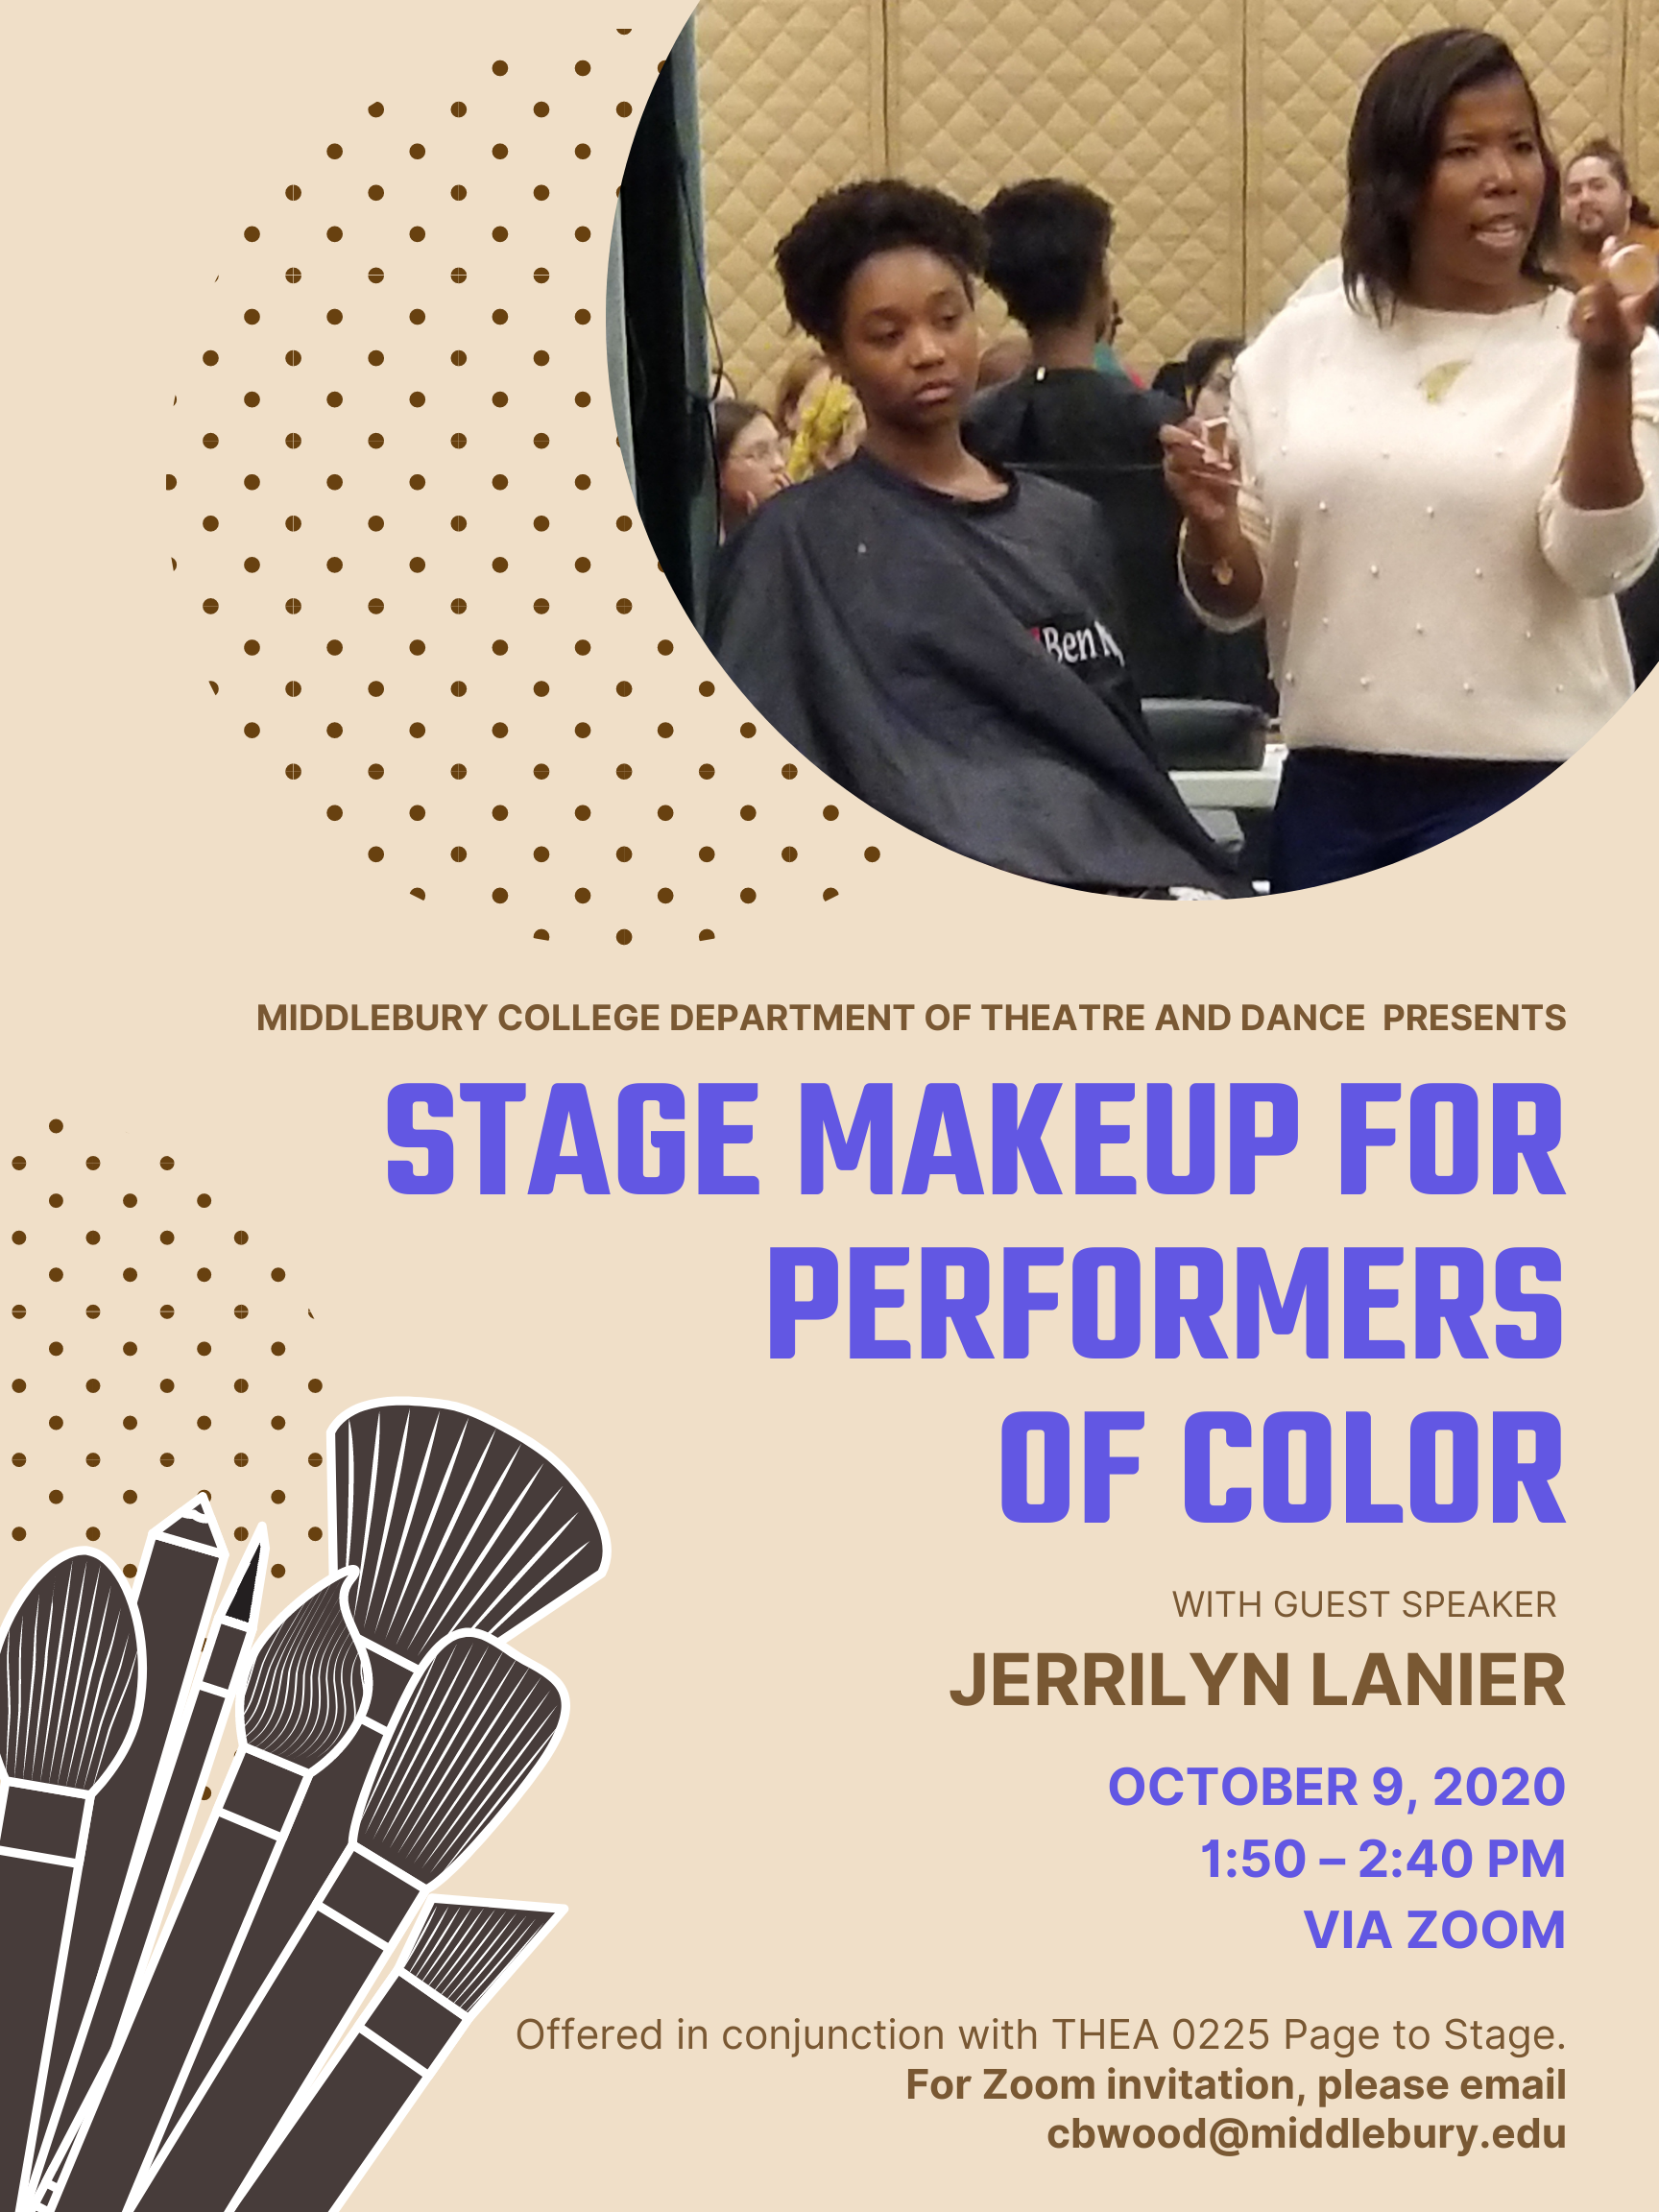 Stage Makeup for Performers of Color Poster